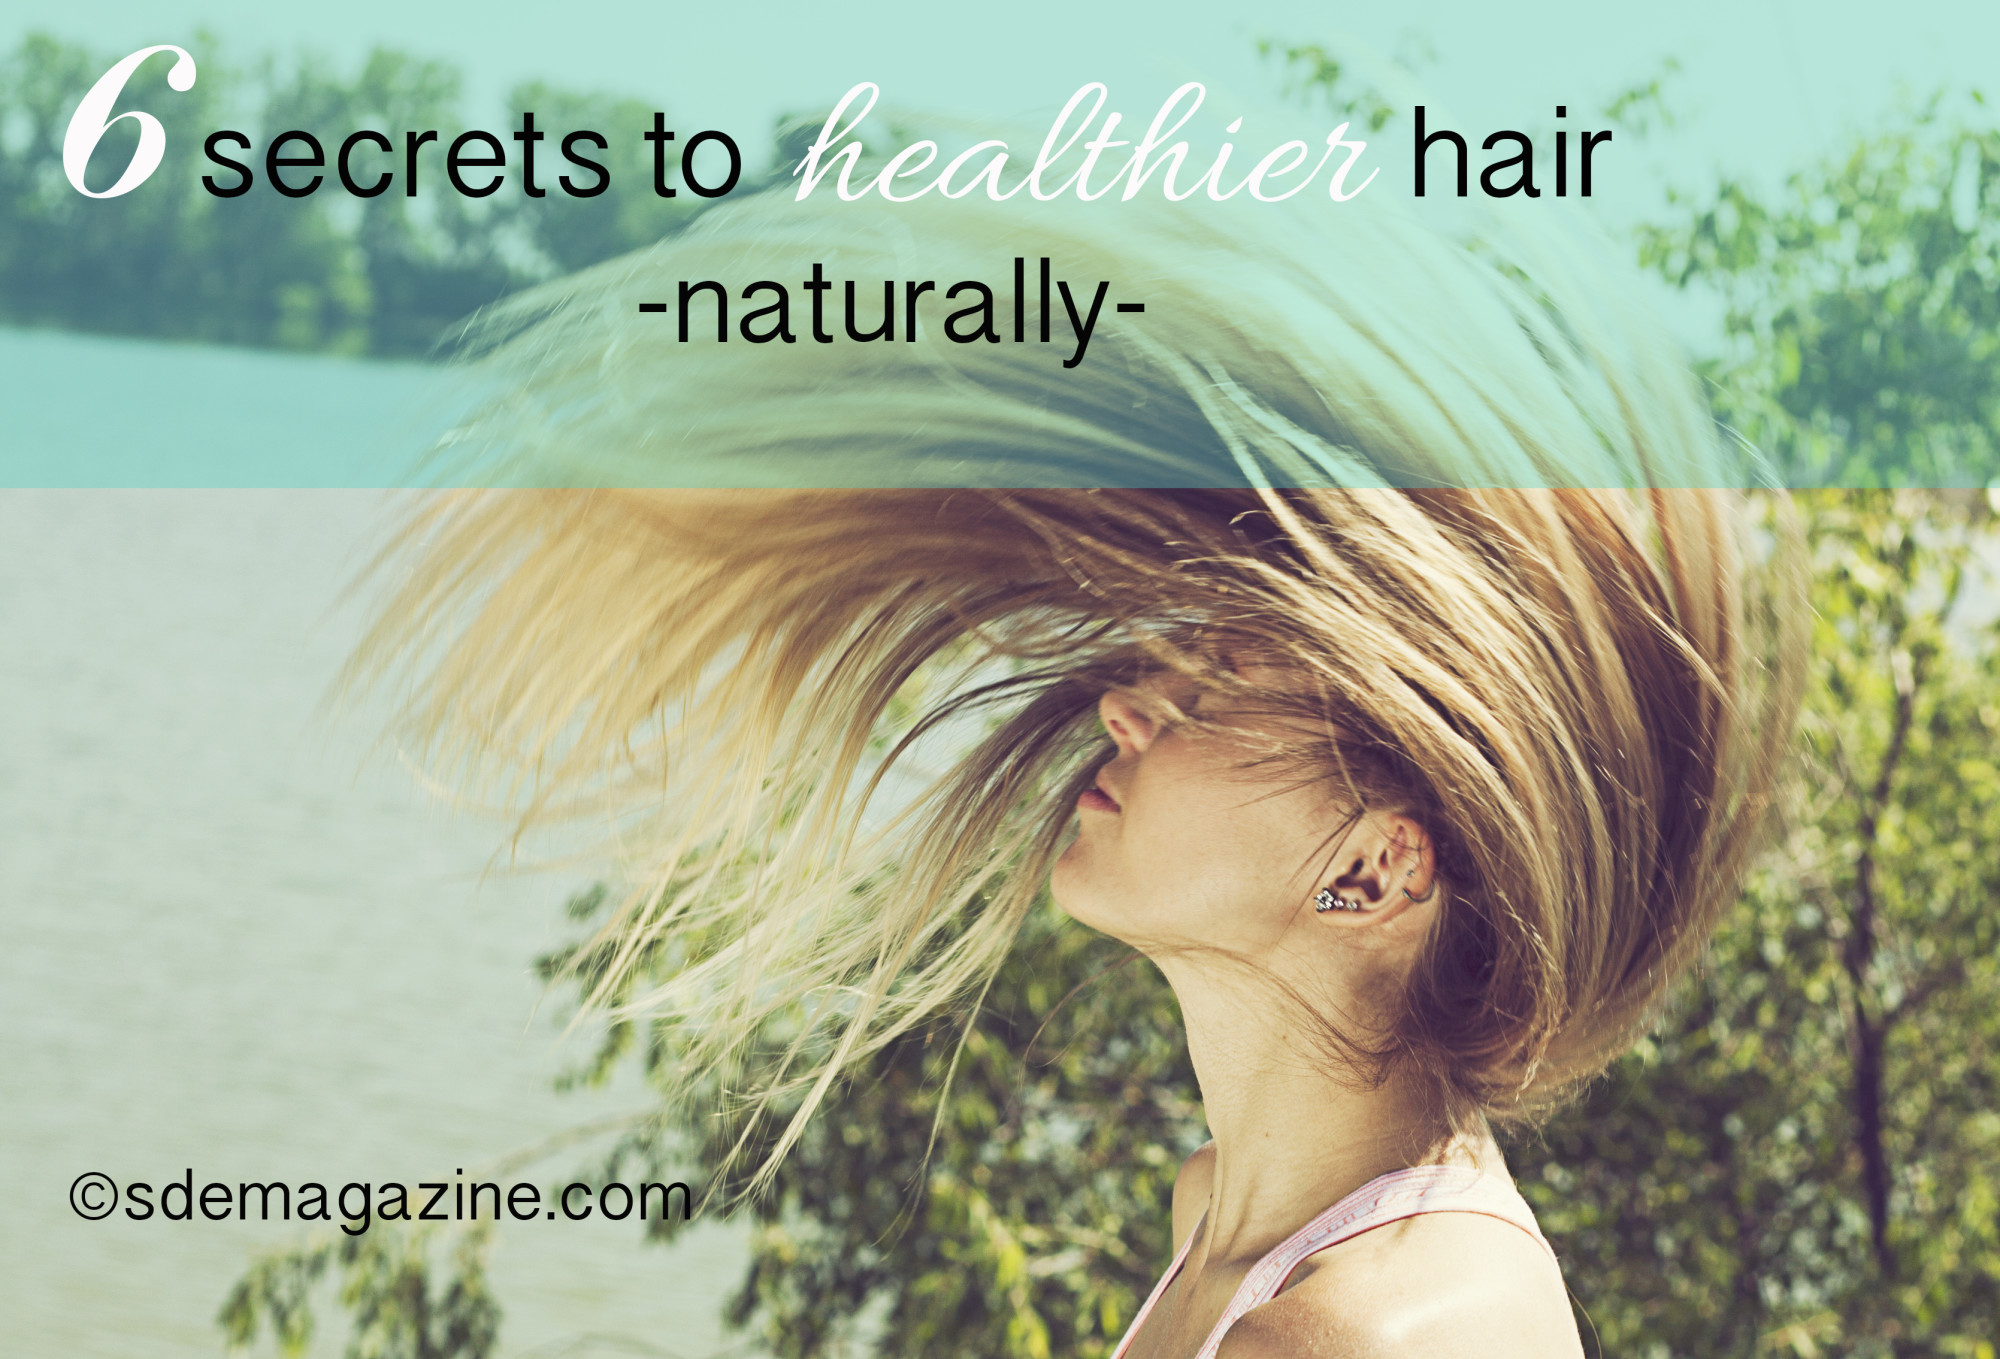 6 secrets to healthier hair- the natural way!